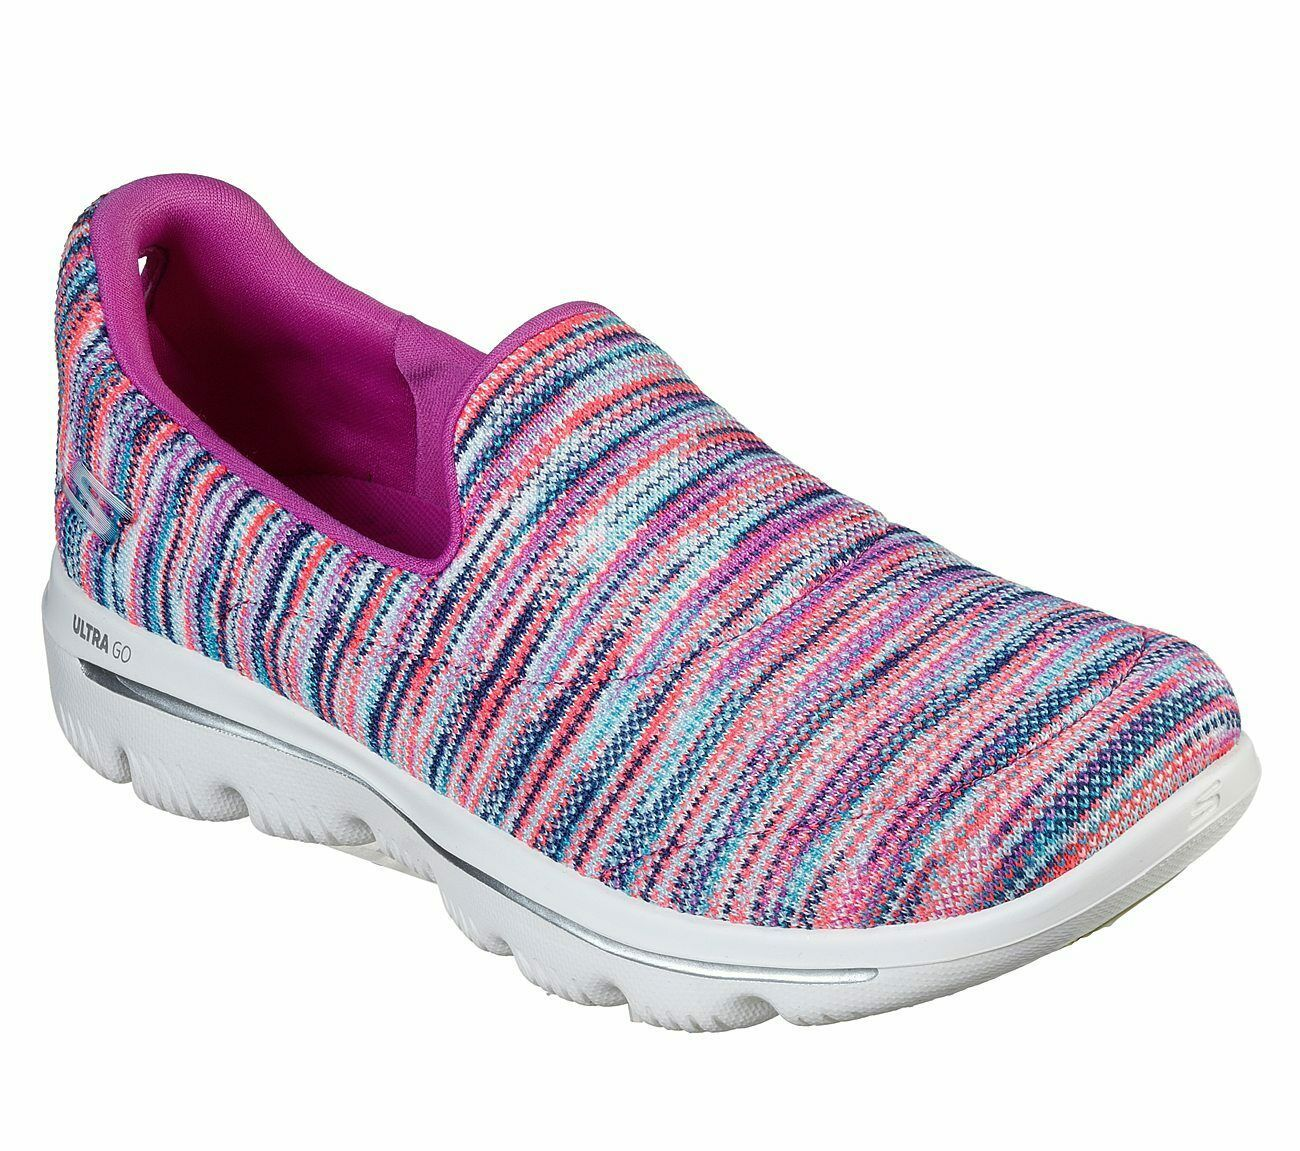 Skechers Shoes Purple Pink Go Walk Evolution Women's Sporty Casual Slip On 15759